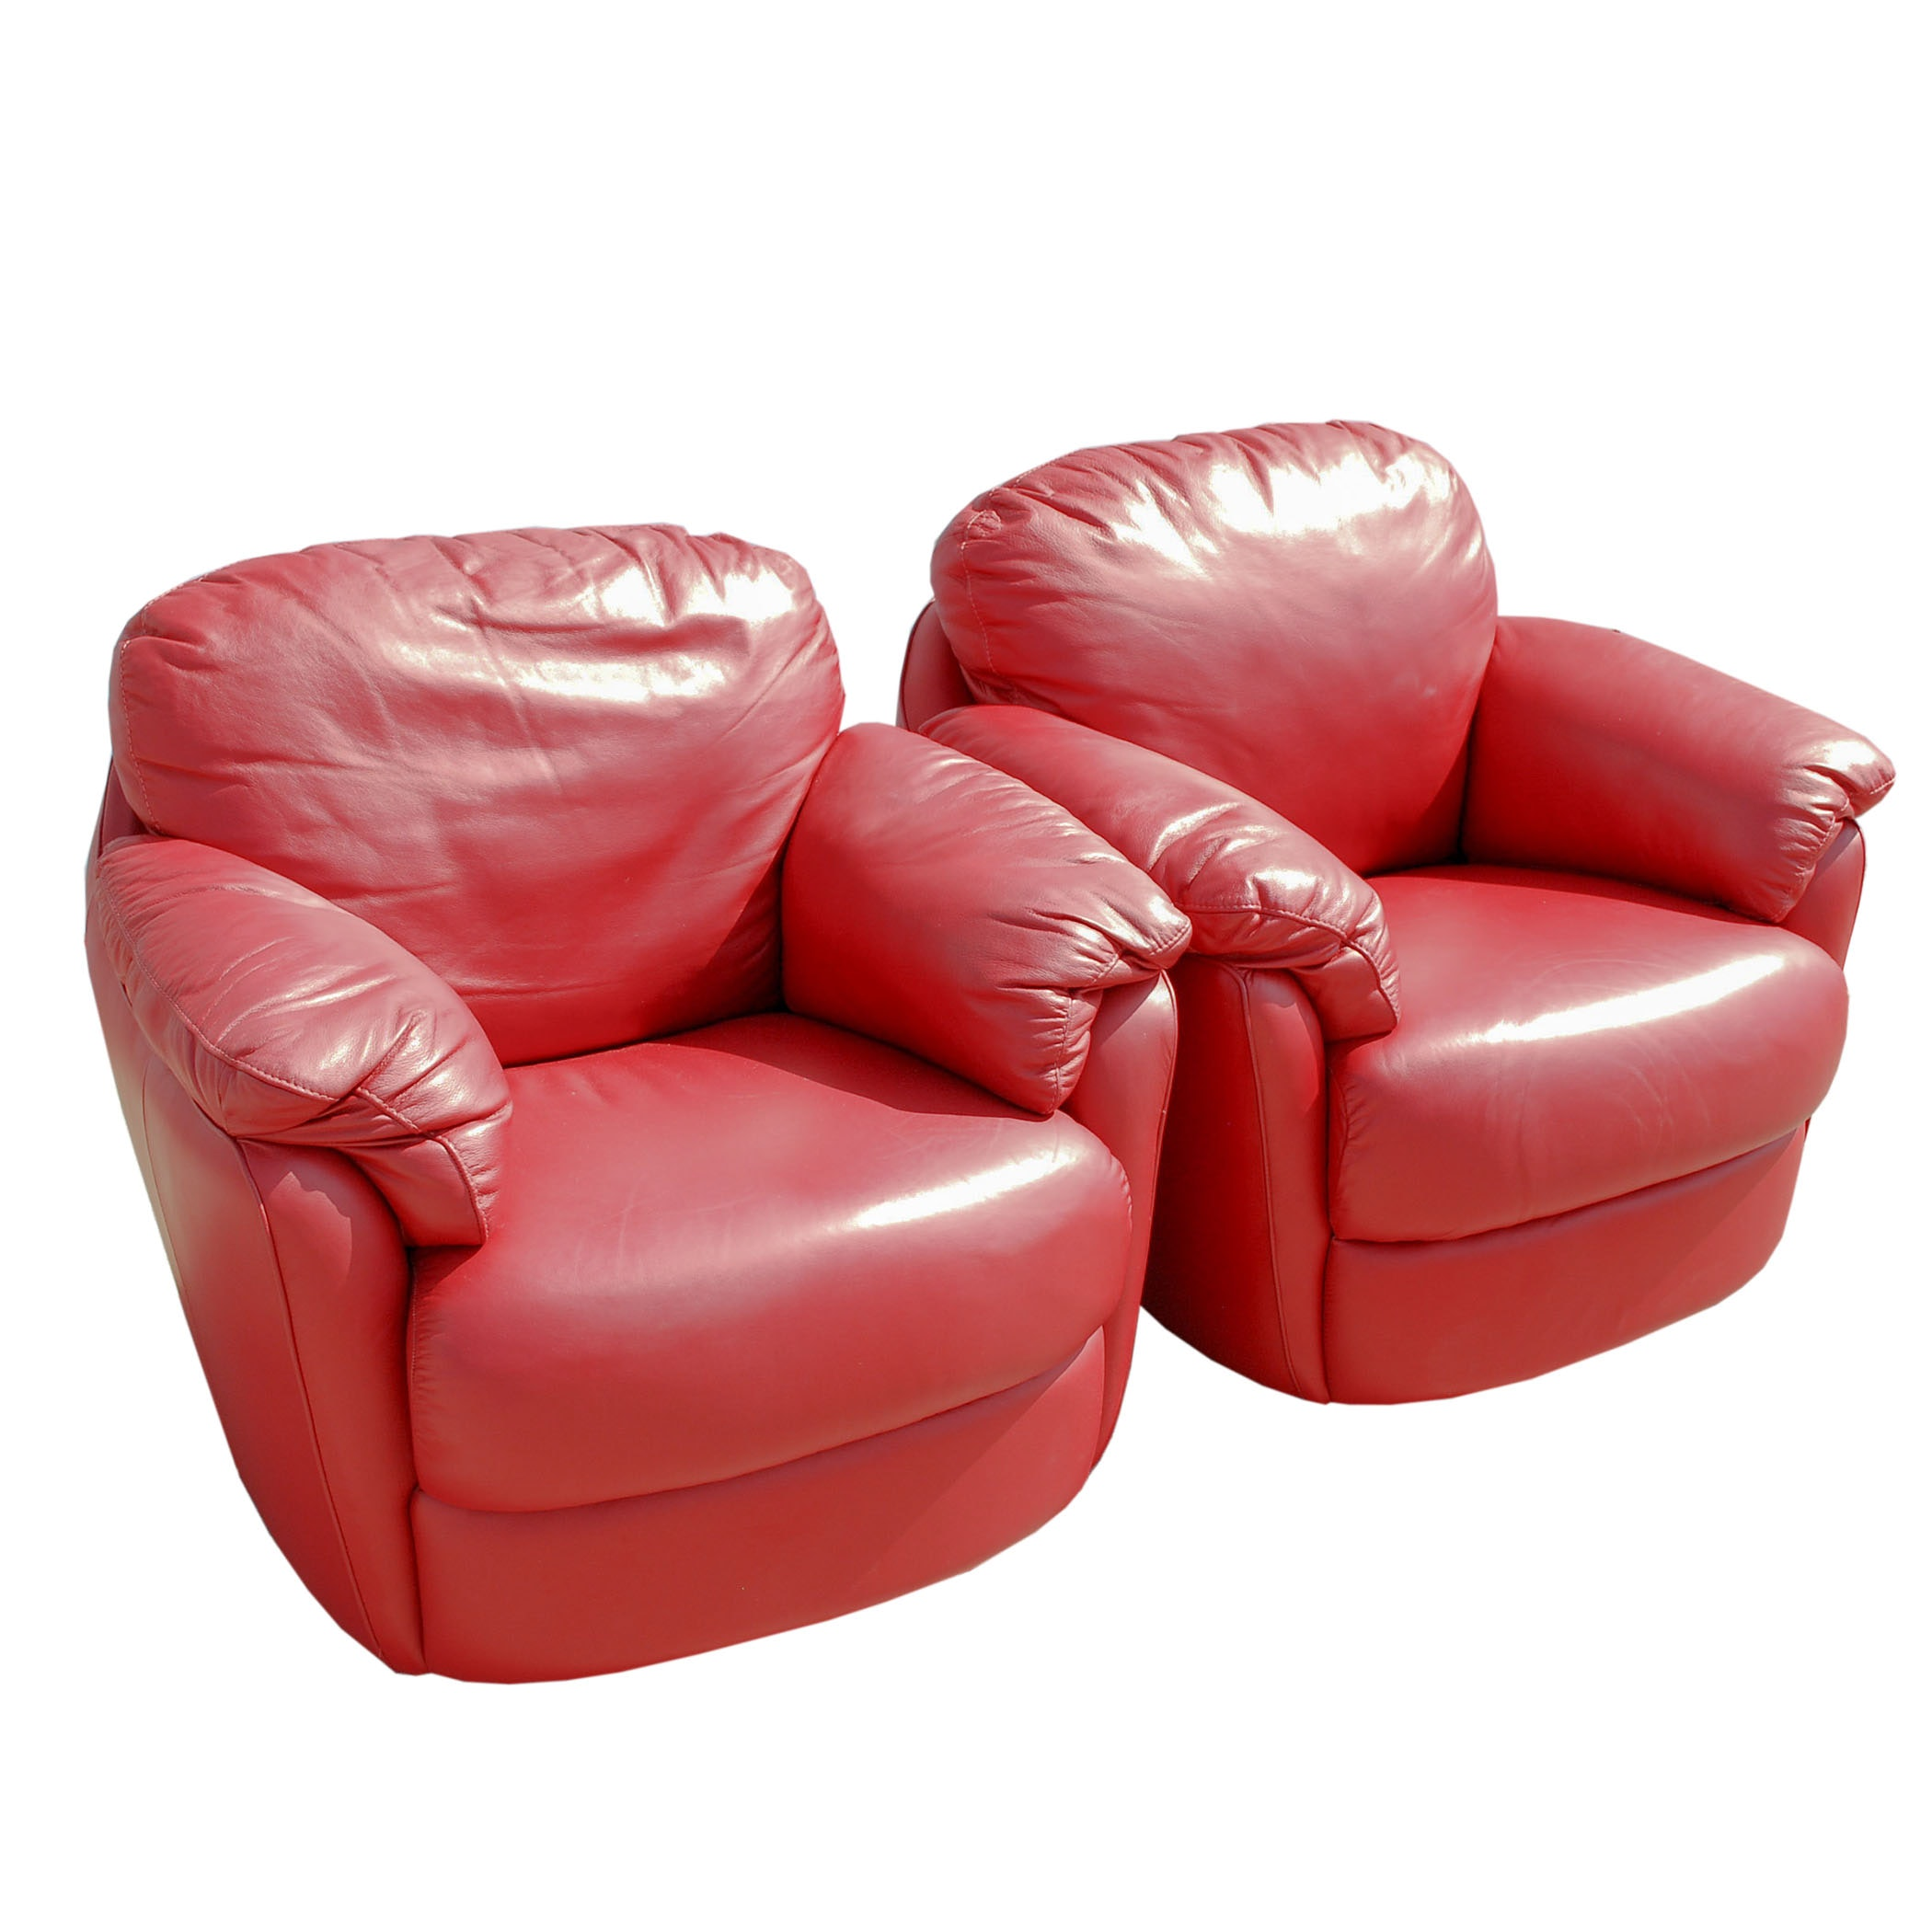 Pair Of Natuzzi Red Leather Swivel Rockers ...